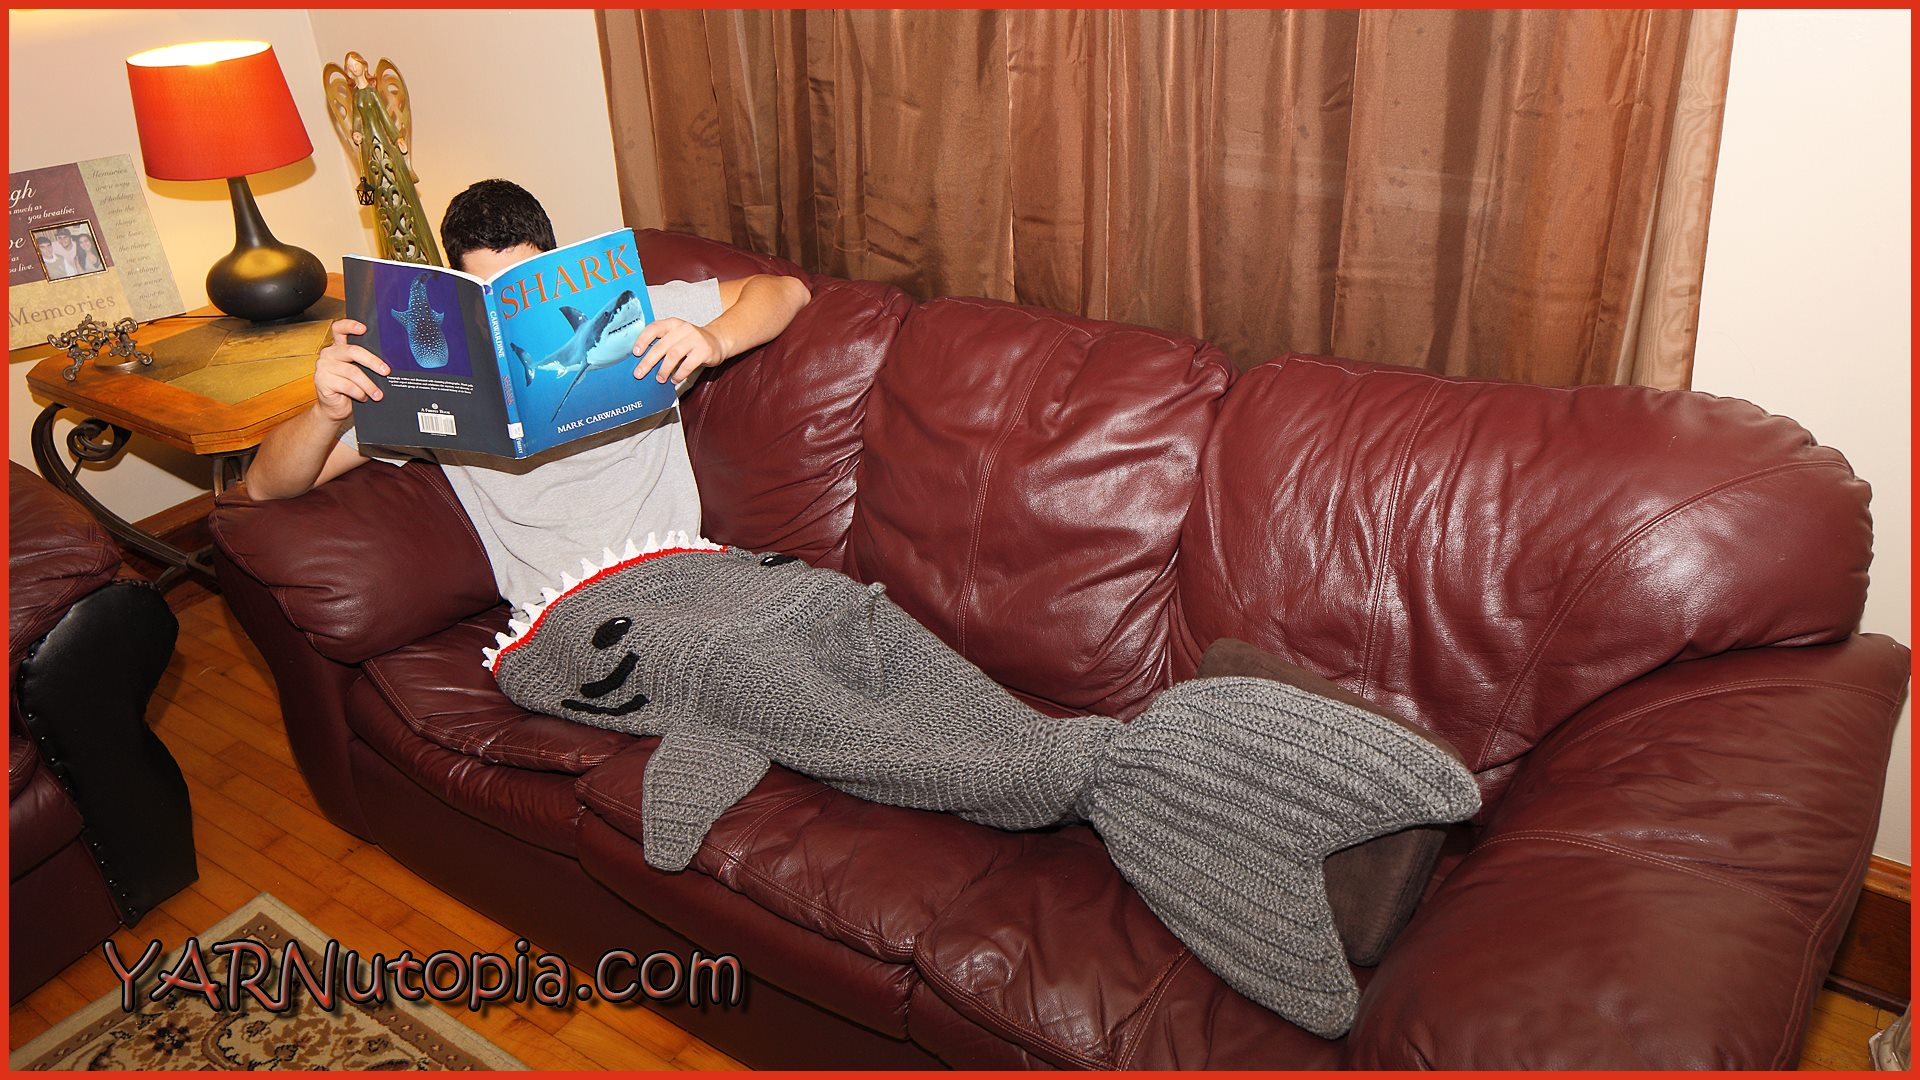 Free Pattern Crochet Shark Blanket : Crochet Tutorial: Adult Shark Blanket YARNutopia by ...